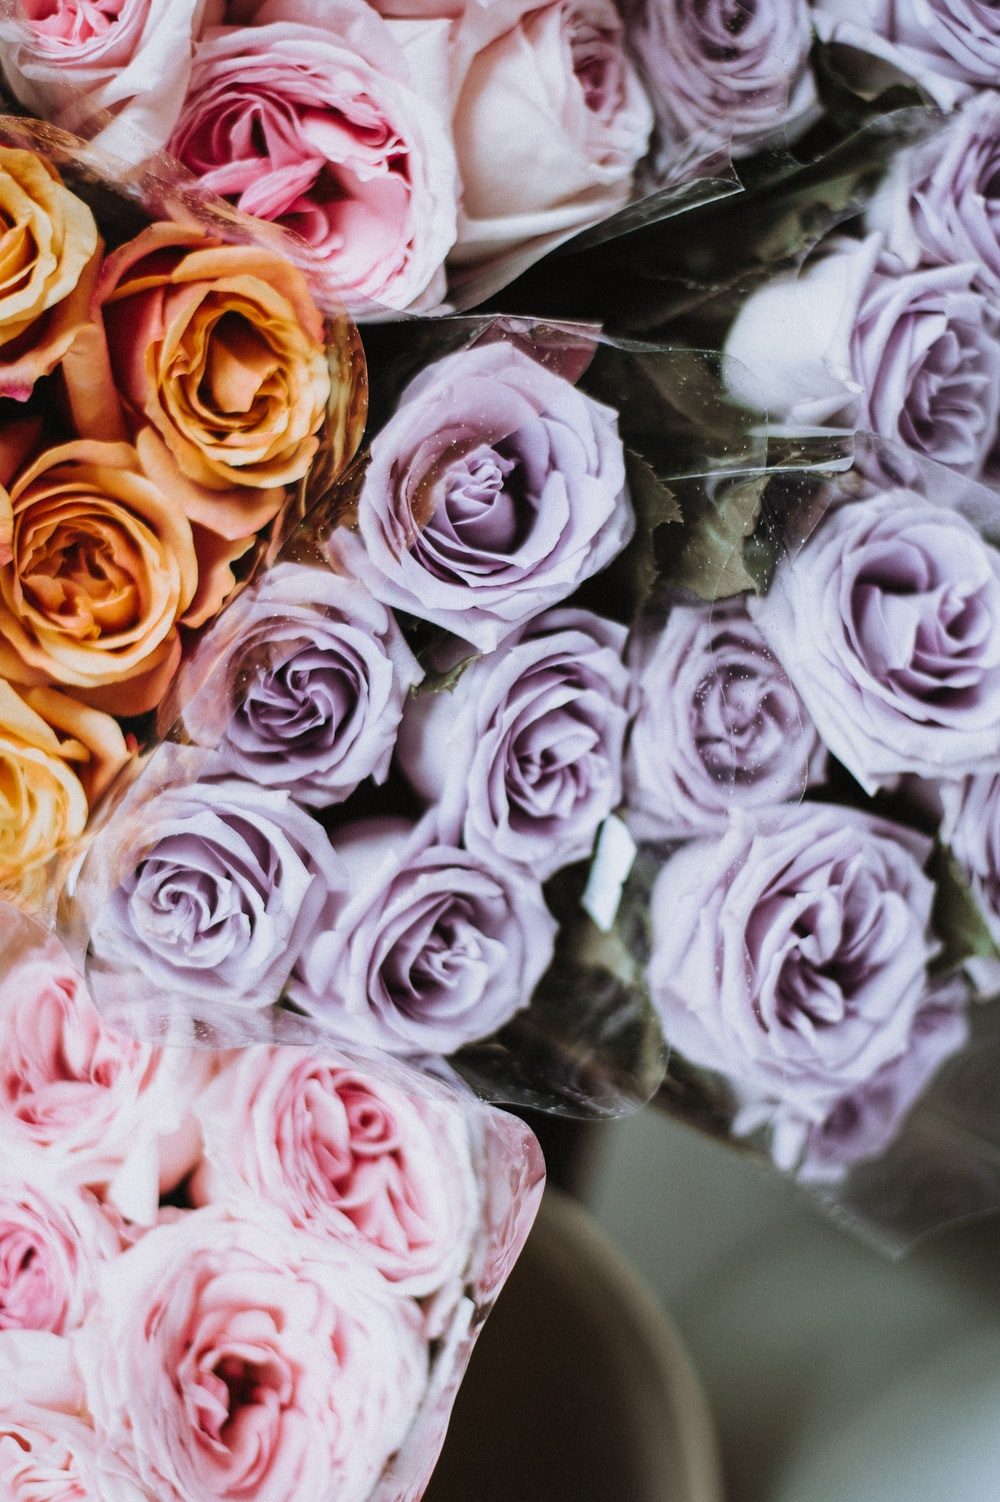 bouquet of different colored roses